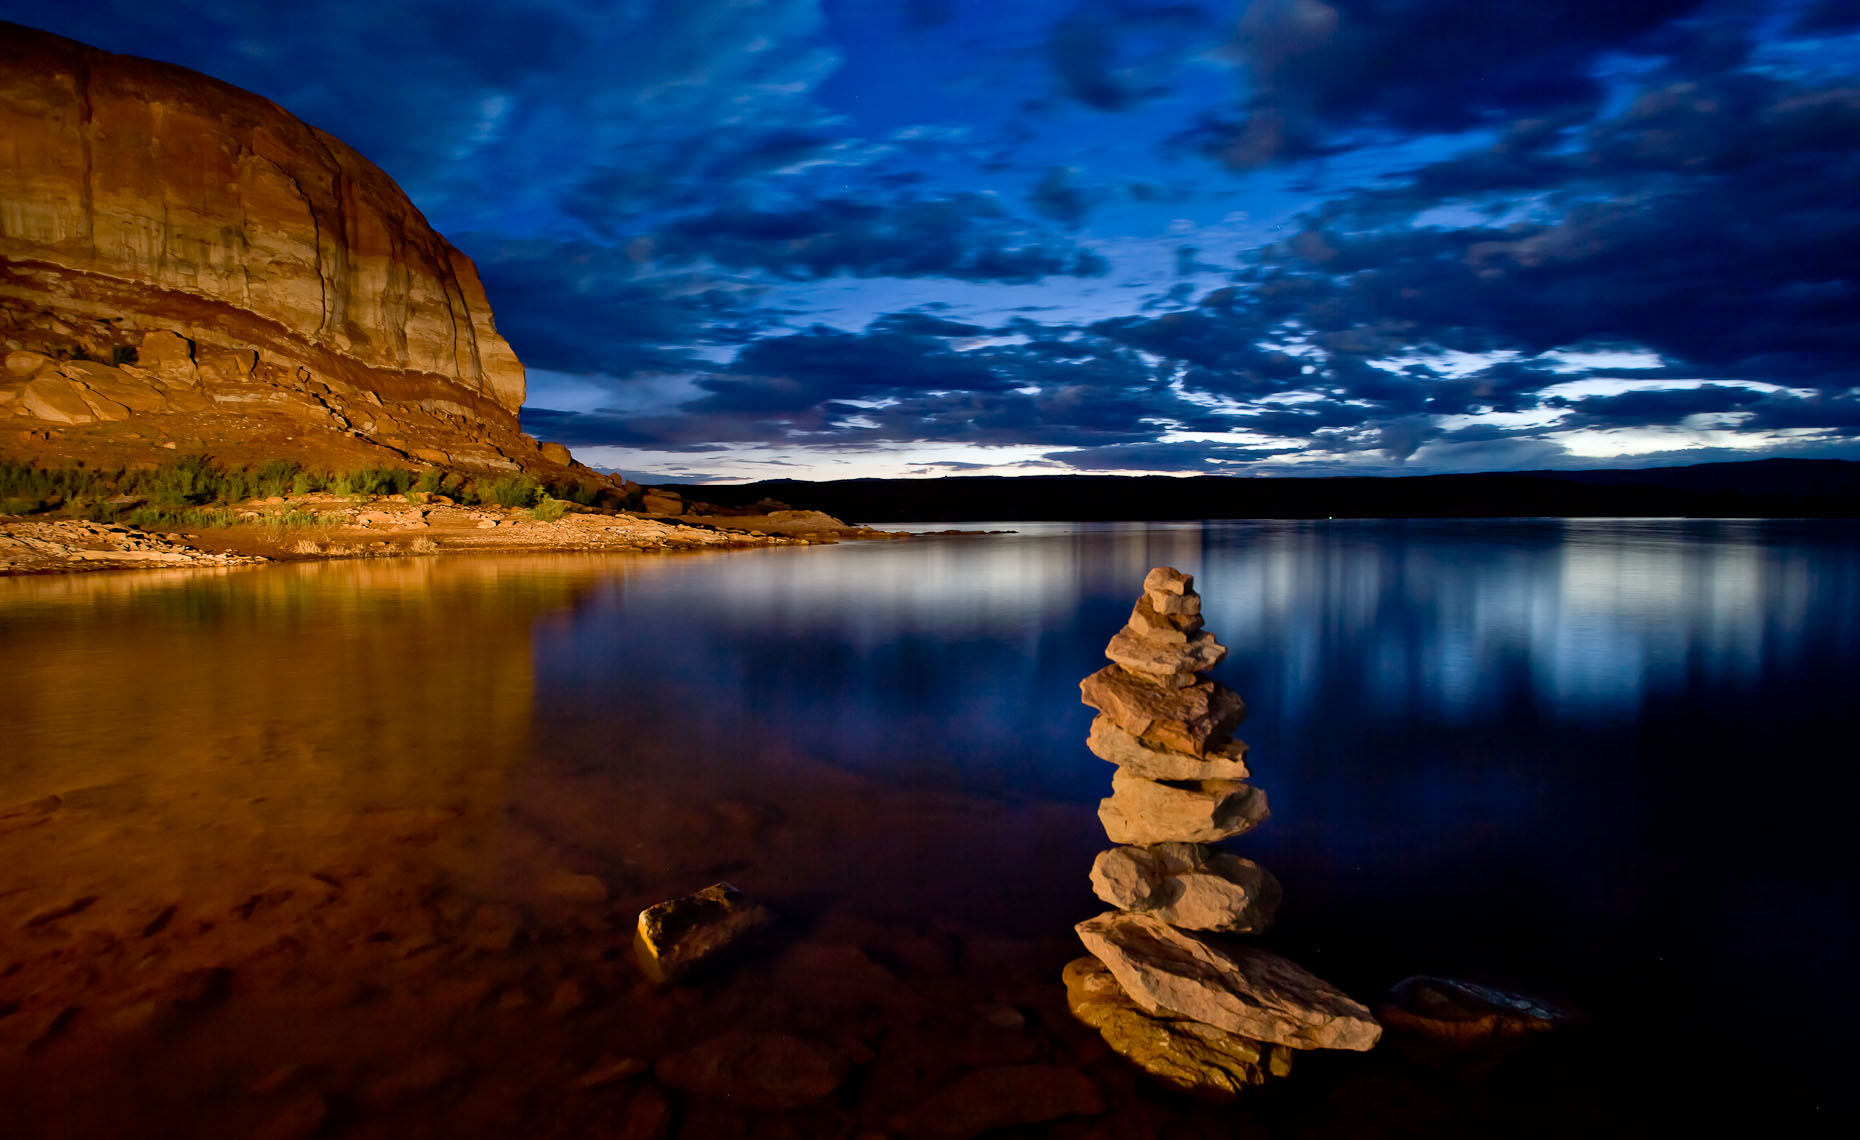 Sunset Carin - Lake Powell